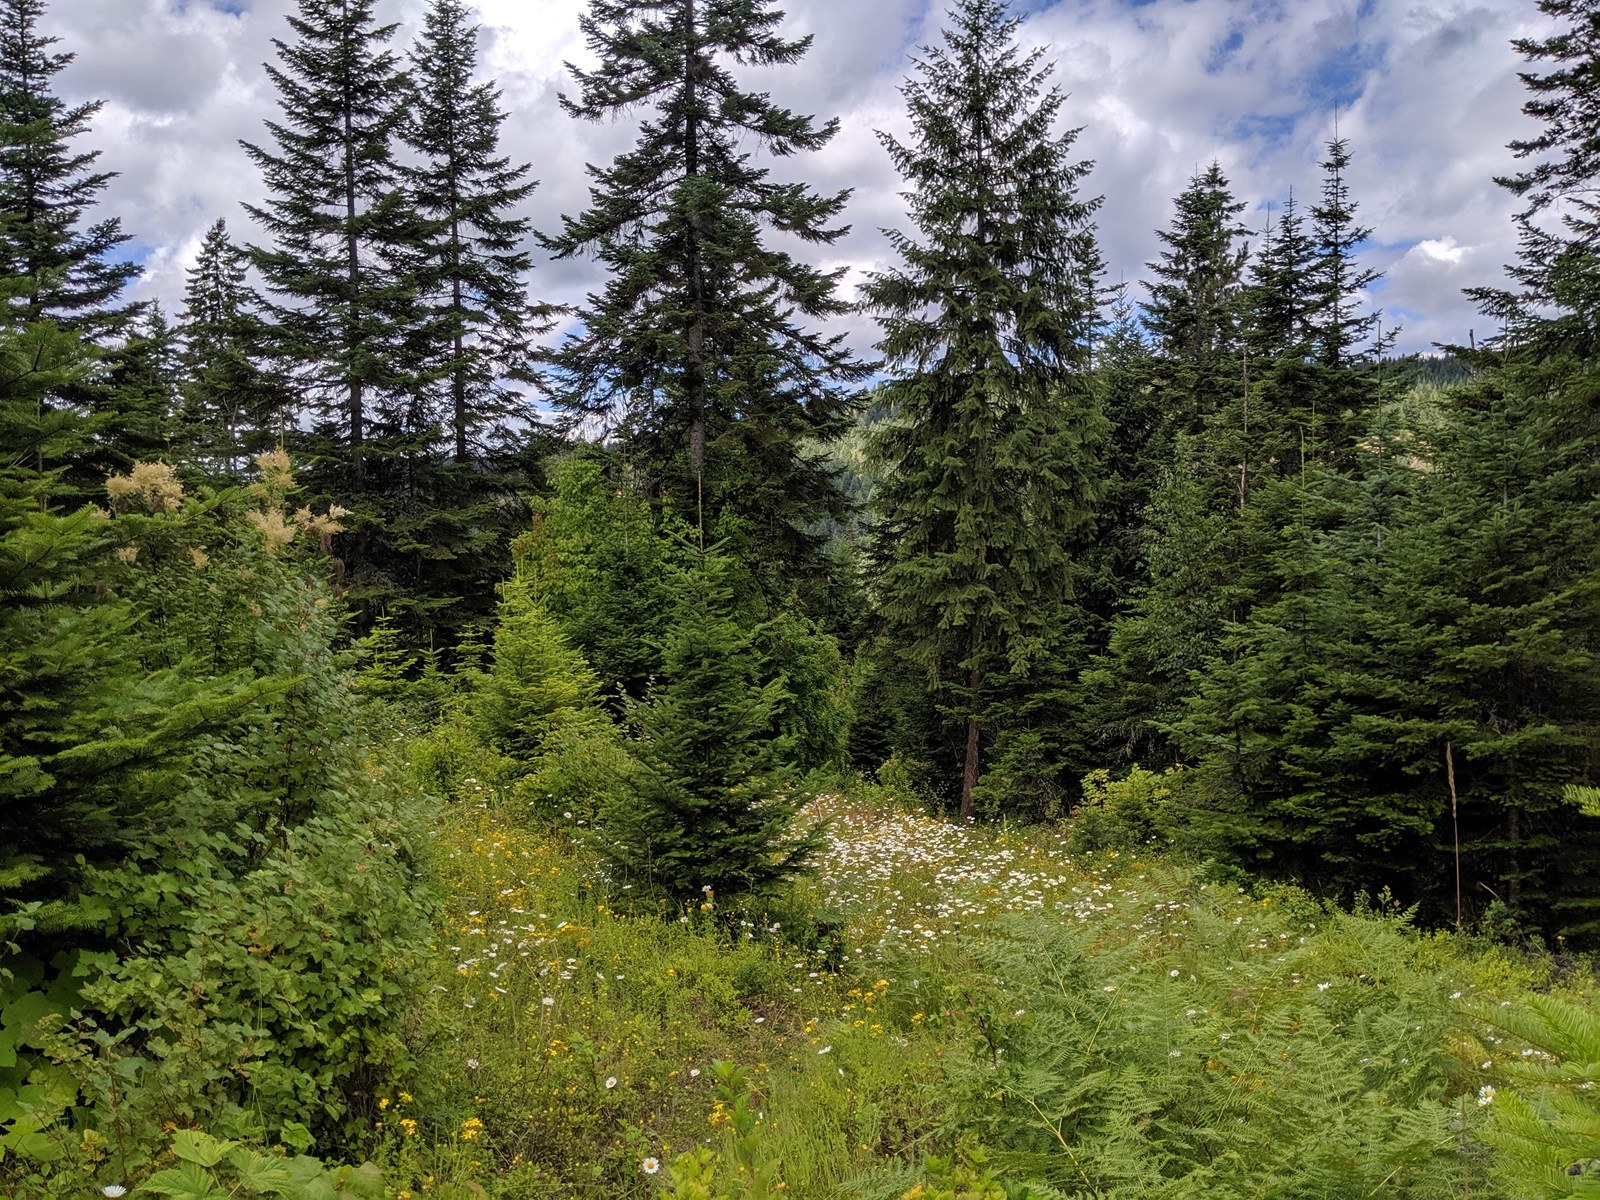 Acreage for sale in Clearwater County, Idaho, Orofino land